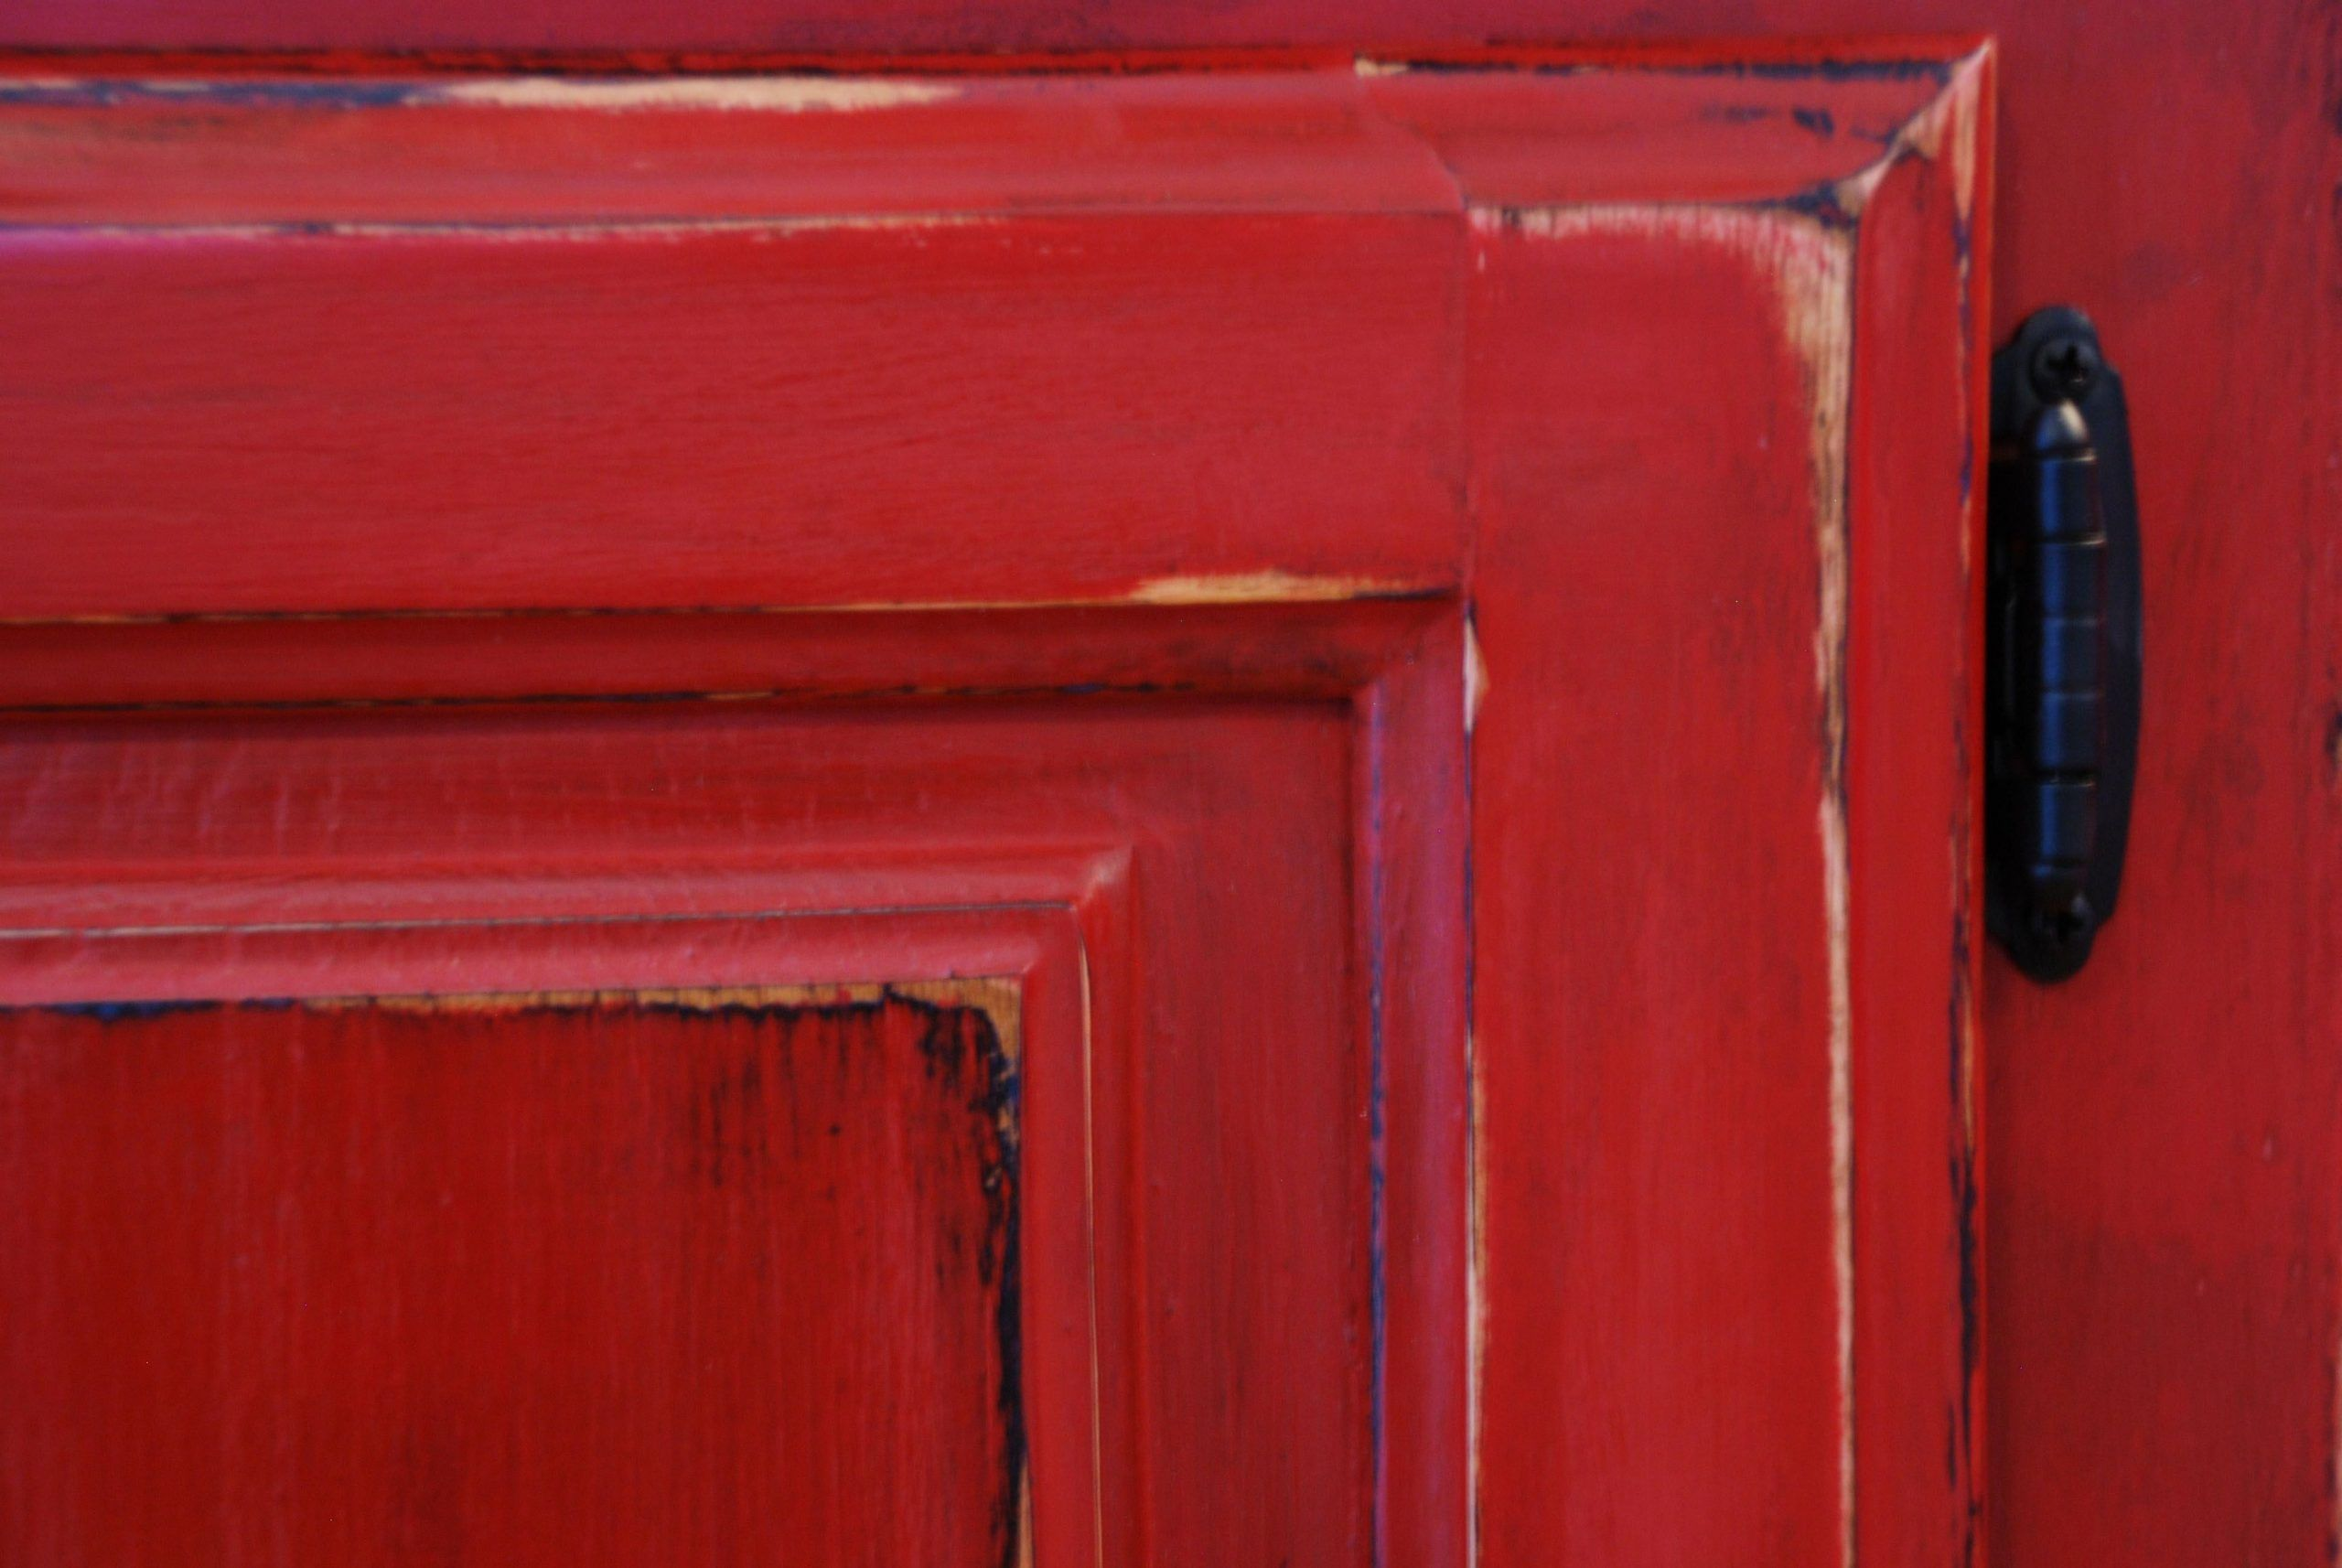 Red Distressed Furniture Google Search Distressed Furniture Google Red Search In 2020 Red Distressed Furniture Red Kitchen Cabinets Distressed Kitchen Cabinets